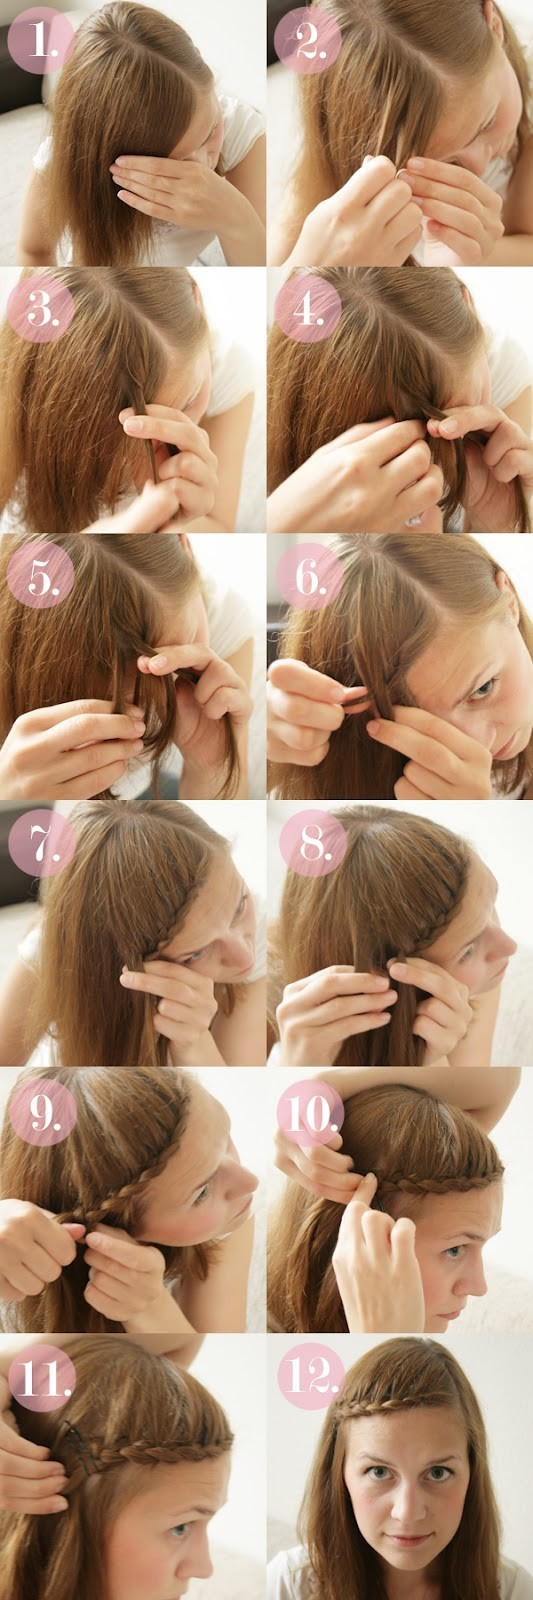 Admirable 15 Braided Bangs Tutorials Cute Easy Hairstyles Pretty Designs Short Hairstyles Gunalazisus